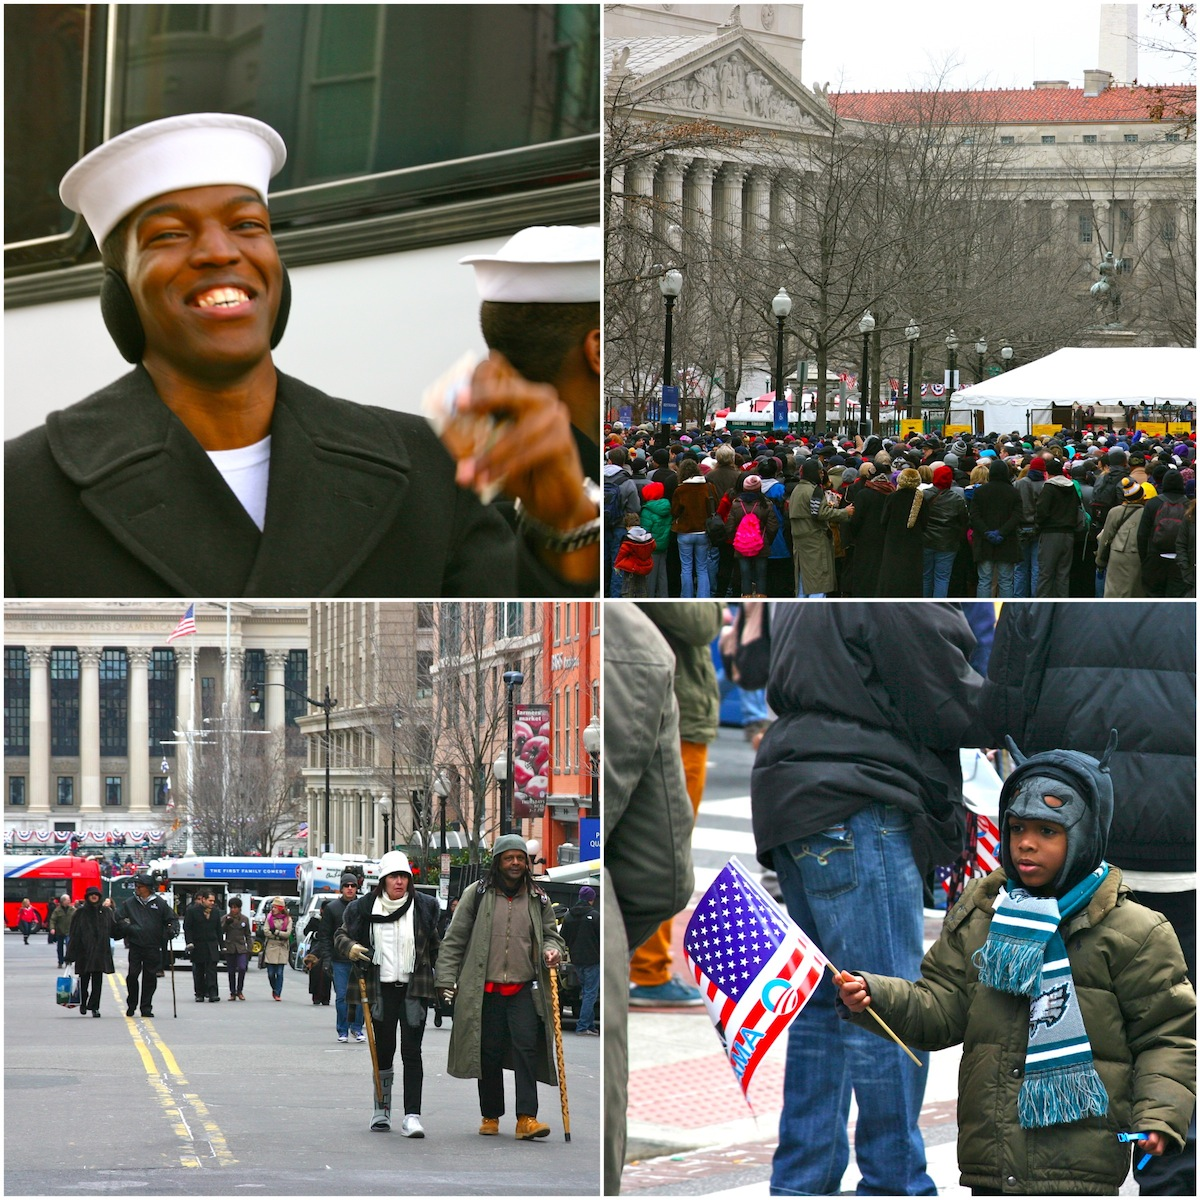 Inauguration Day, January 21, 2013